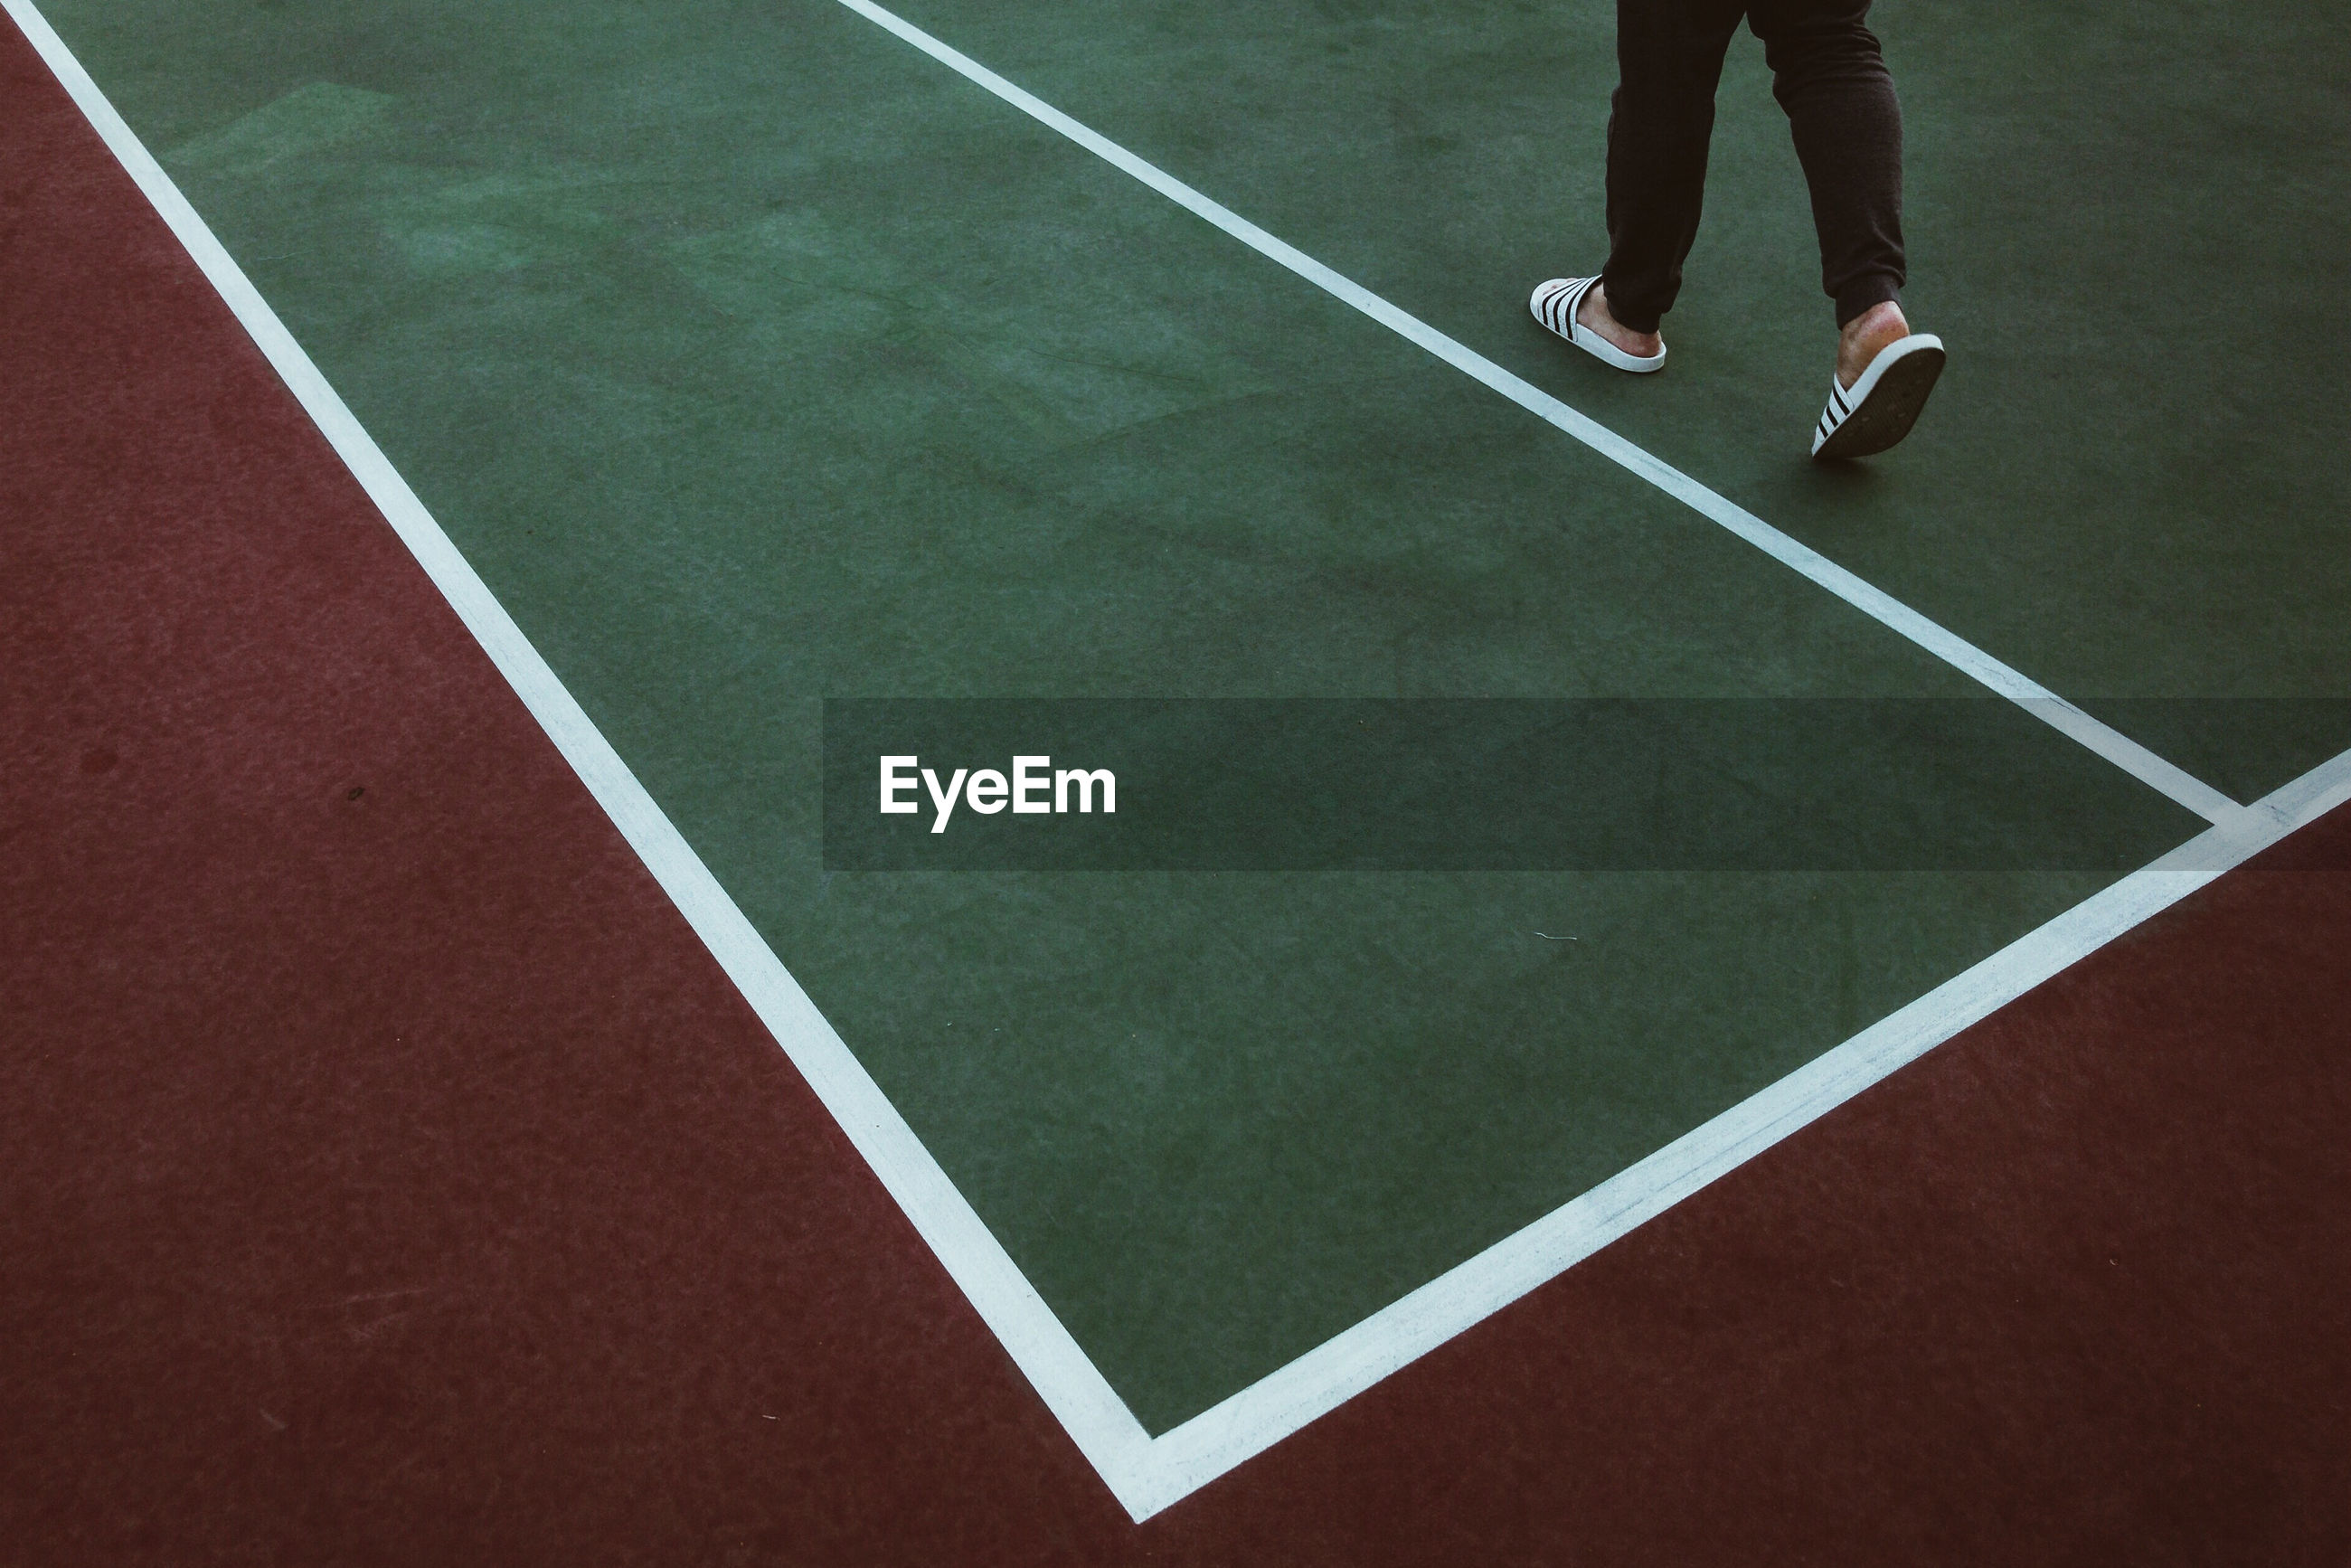 Low section of person standing on tennis court.